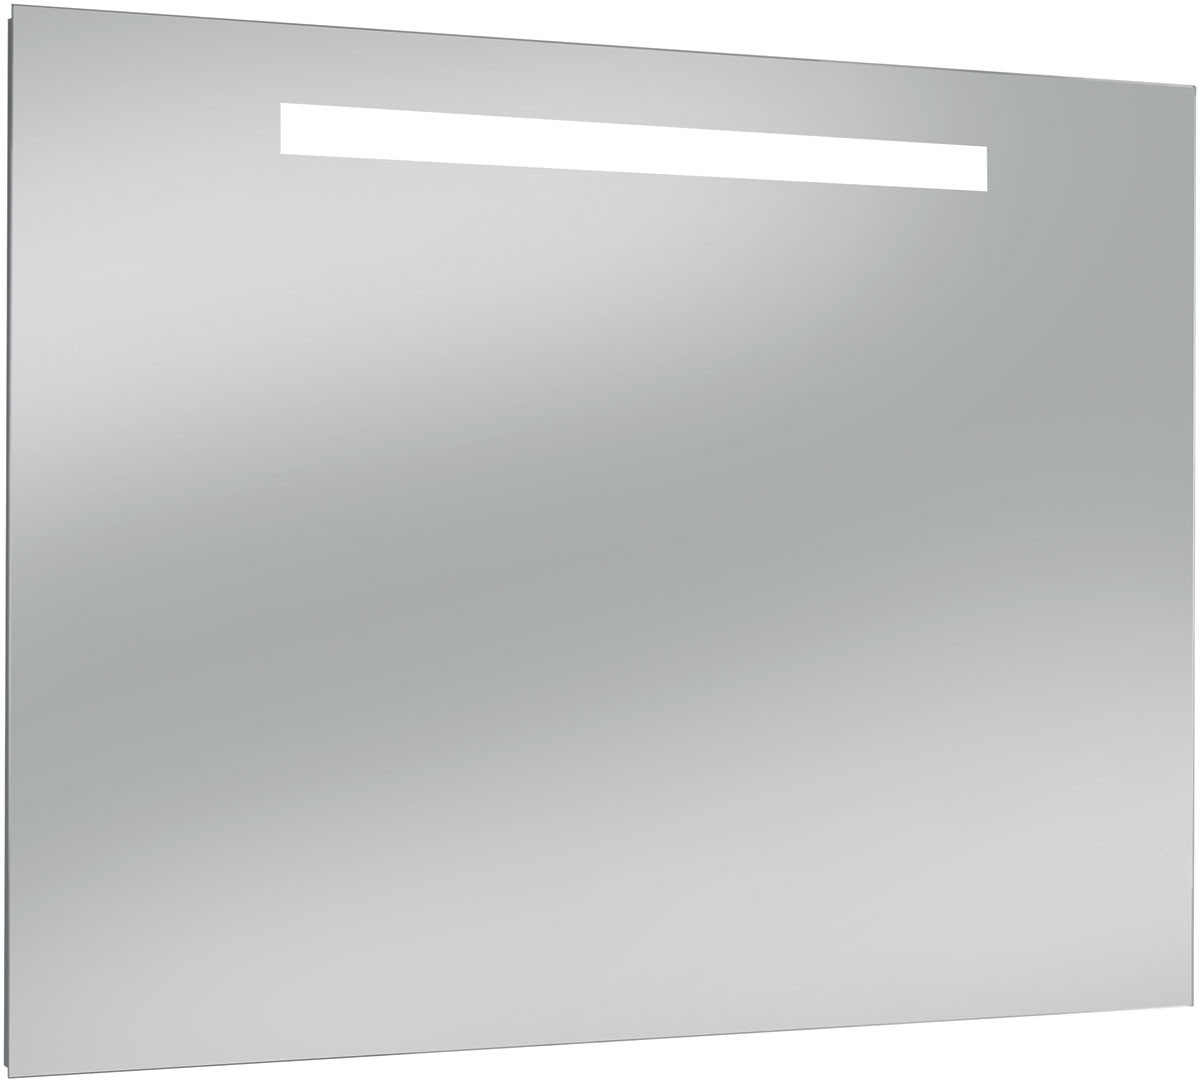 LED-valopeili,More to See One, 600x450-1400mm